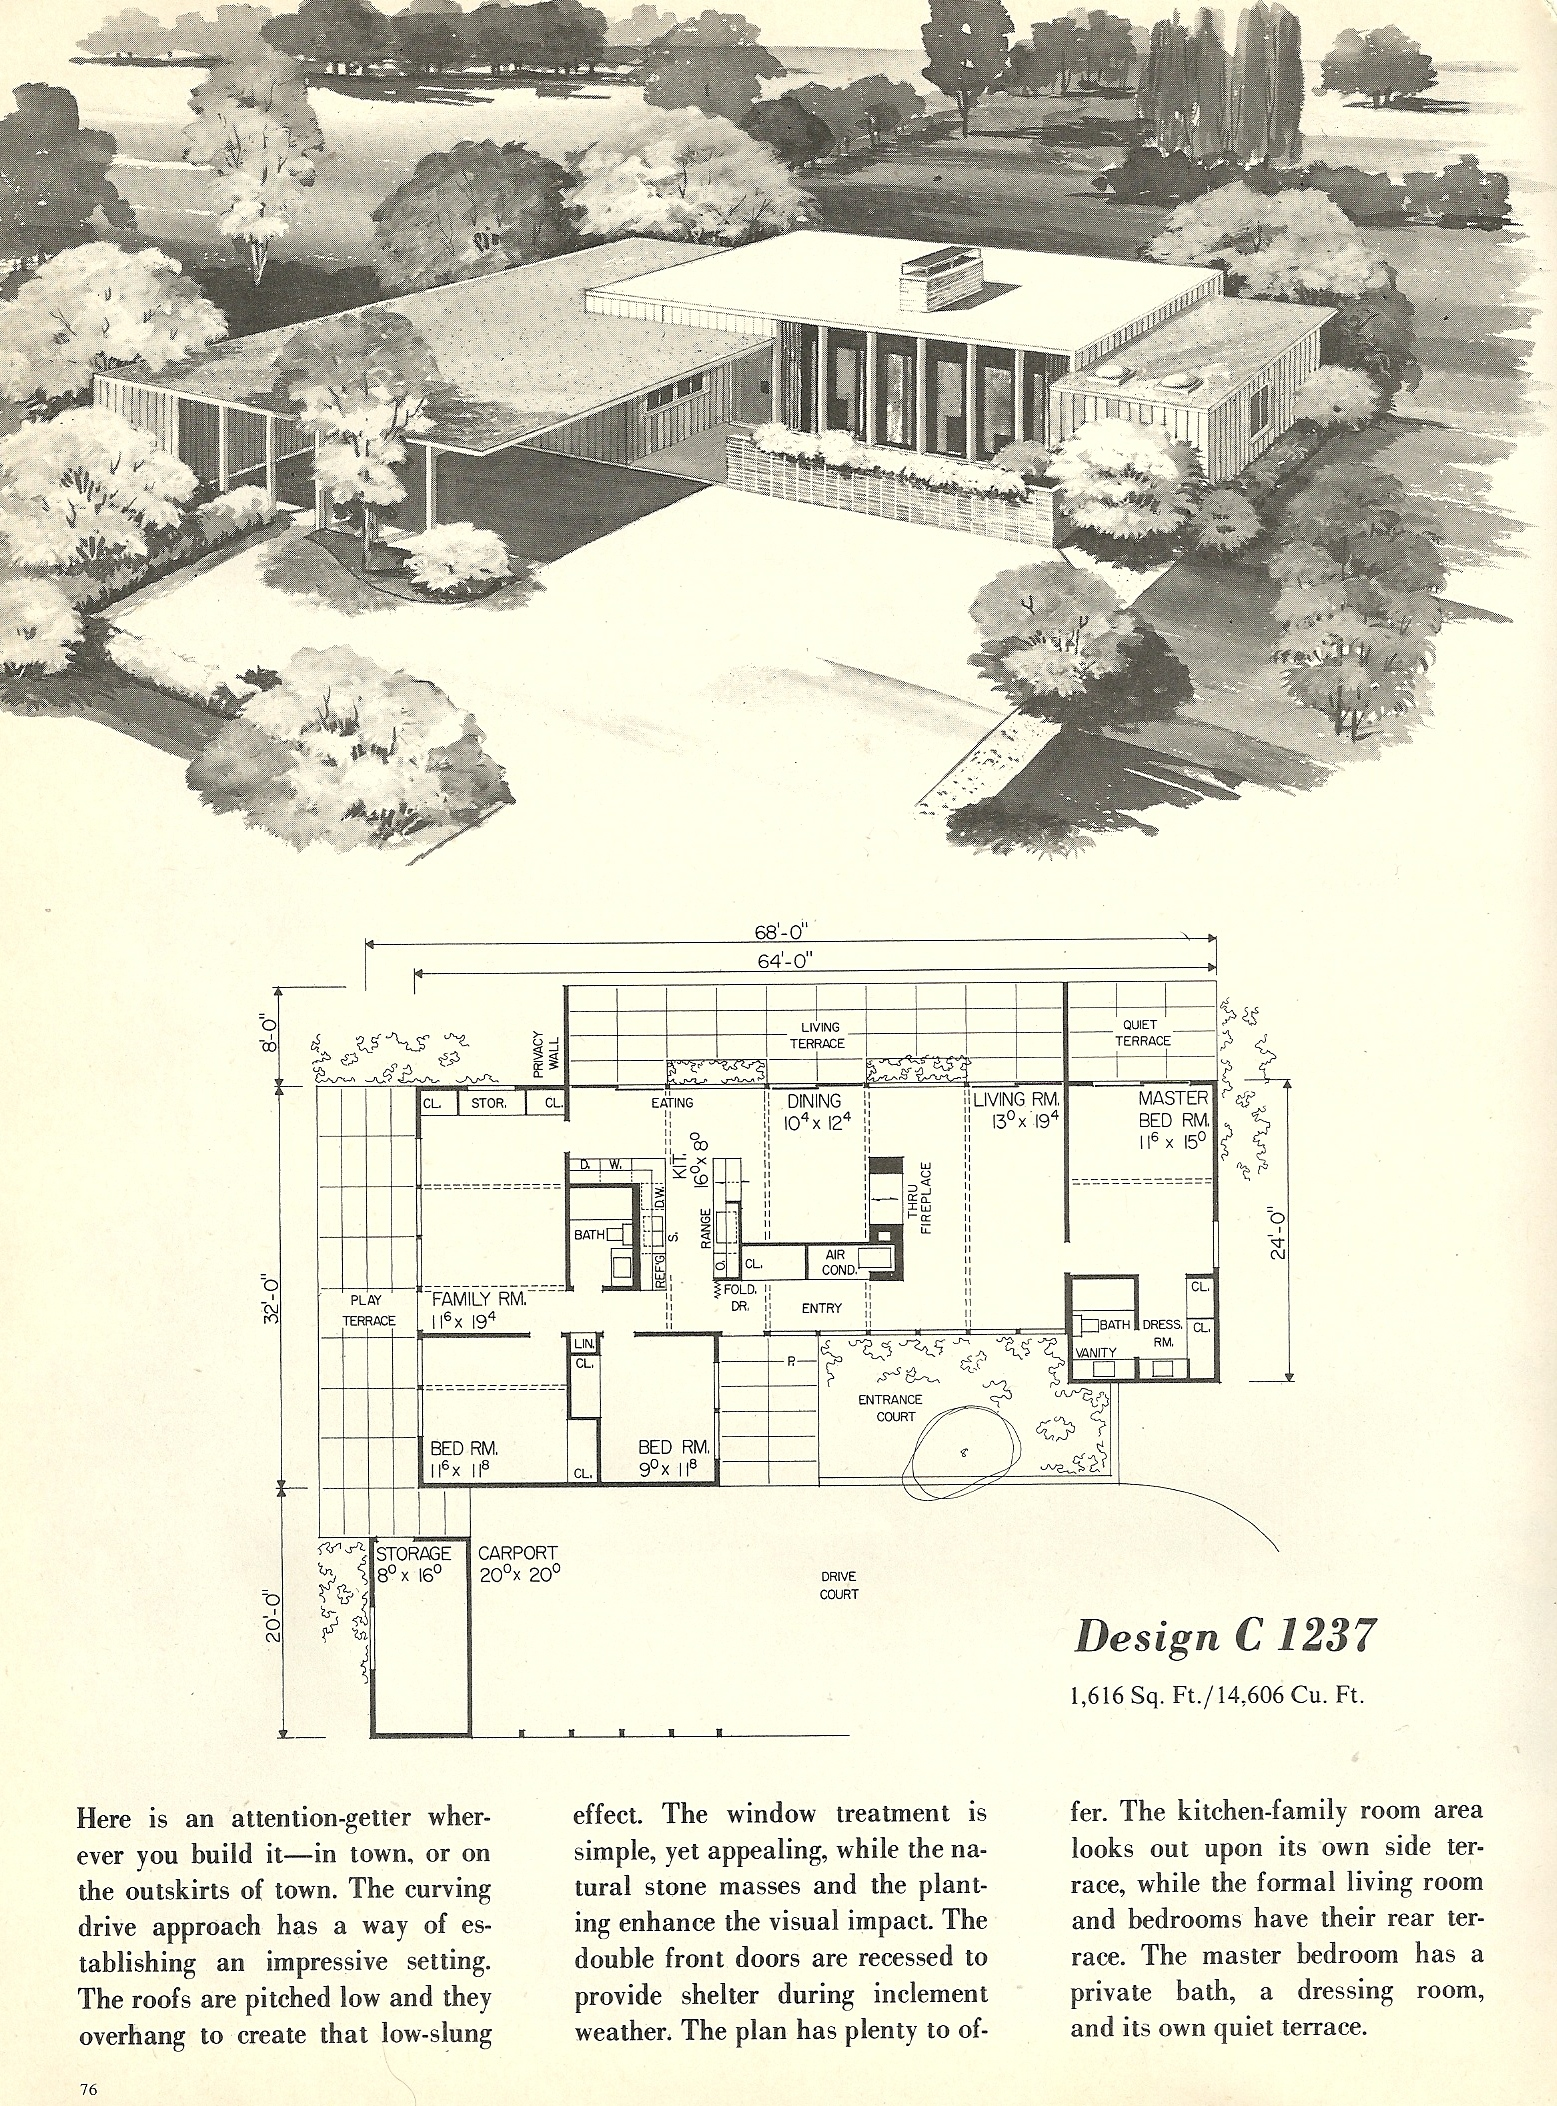 Vintage House Plans 1237 Antique Alter Ego